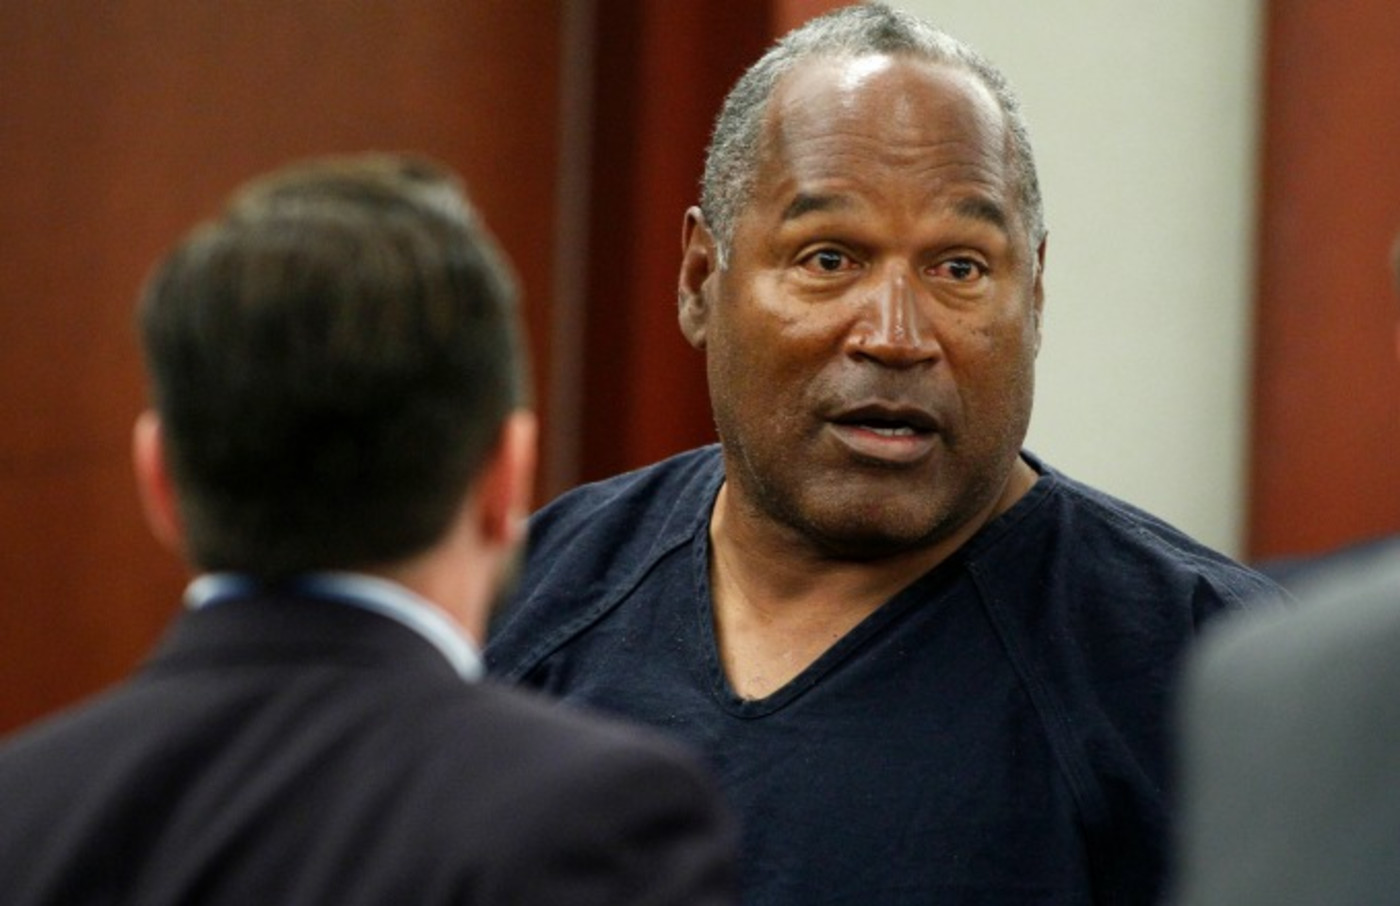 O.J. Simpson appears in court.